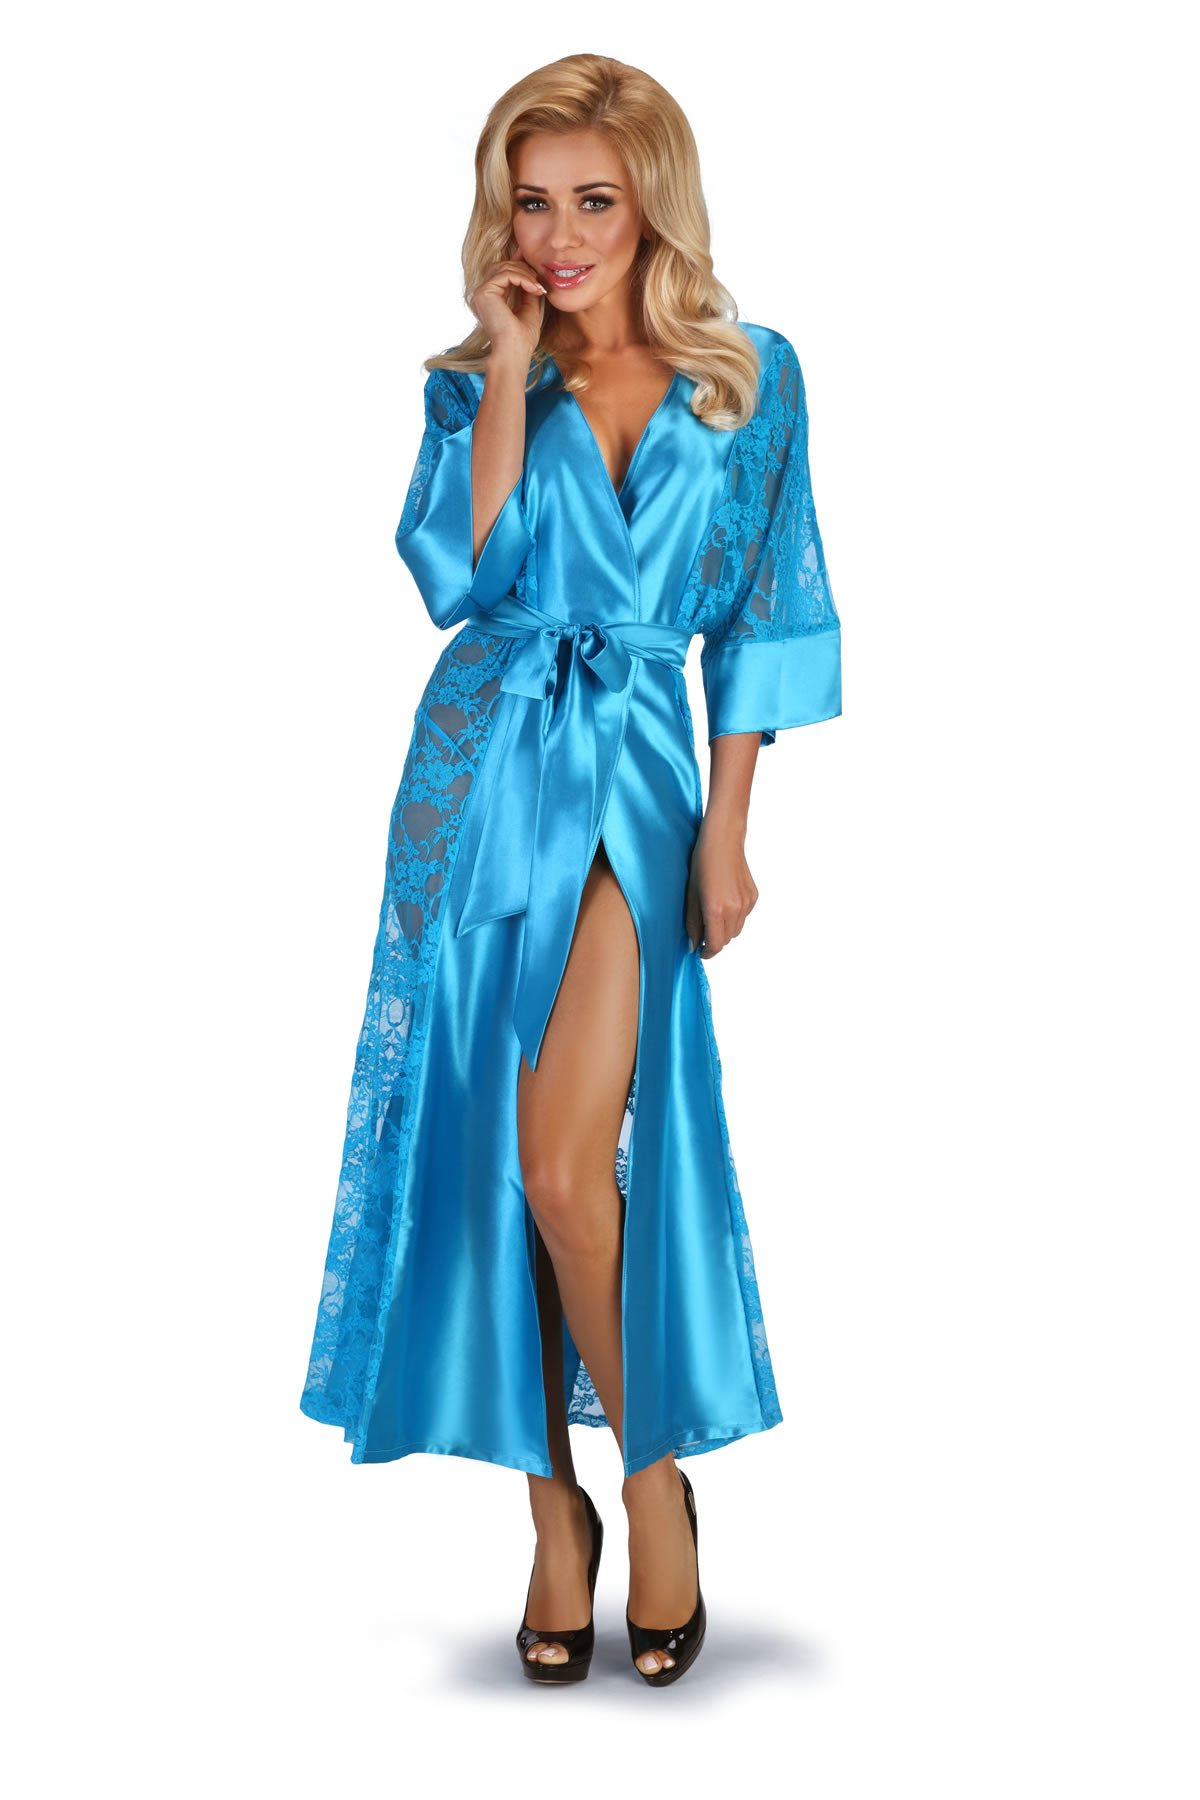 Bouquet turquoise | Collection \ Dressing gowns Collection | Beauty ...